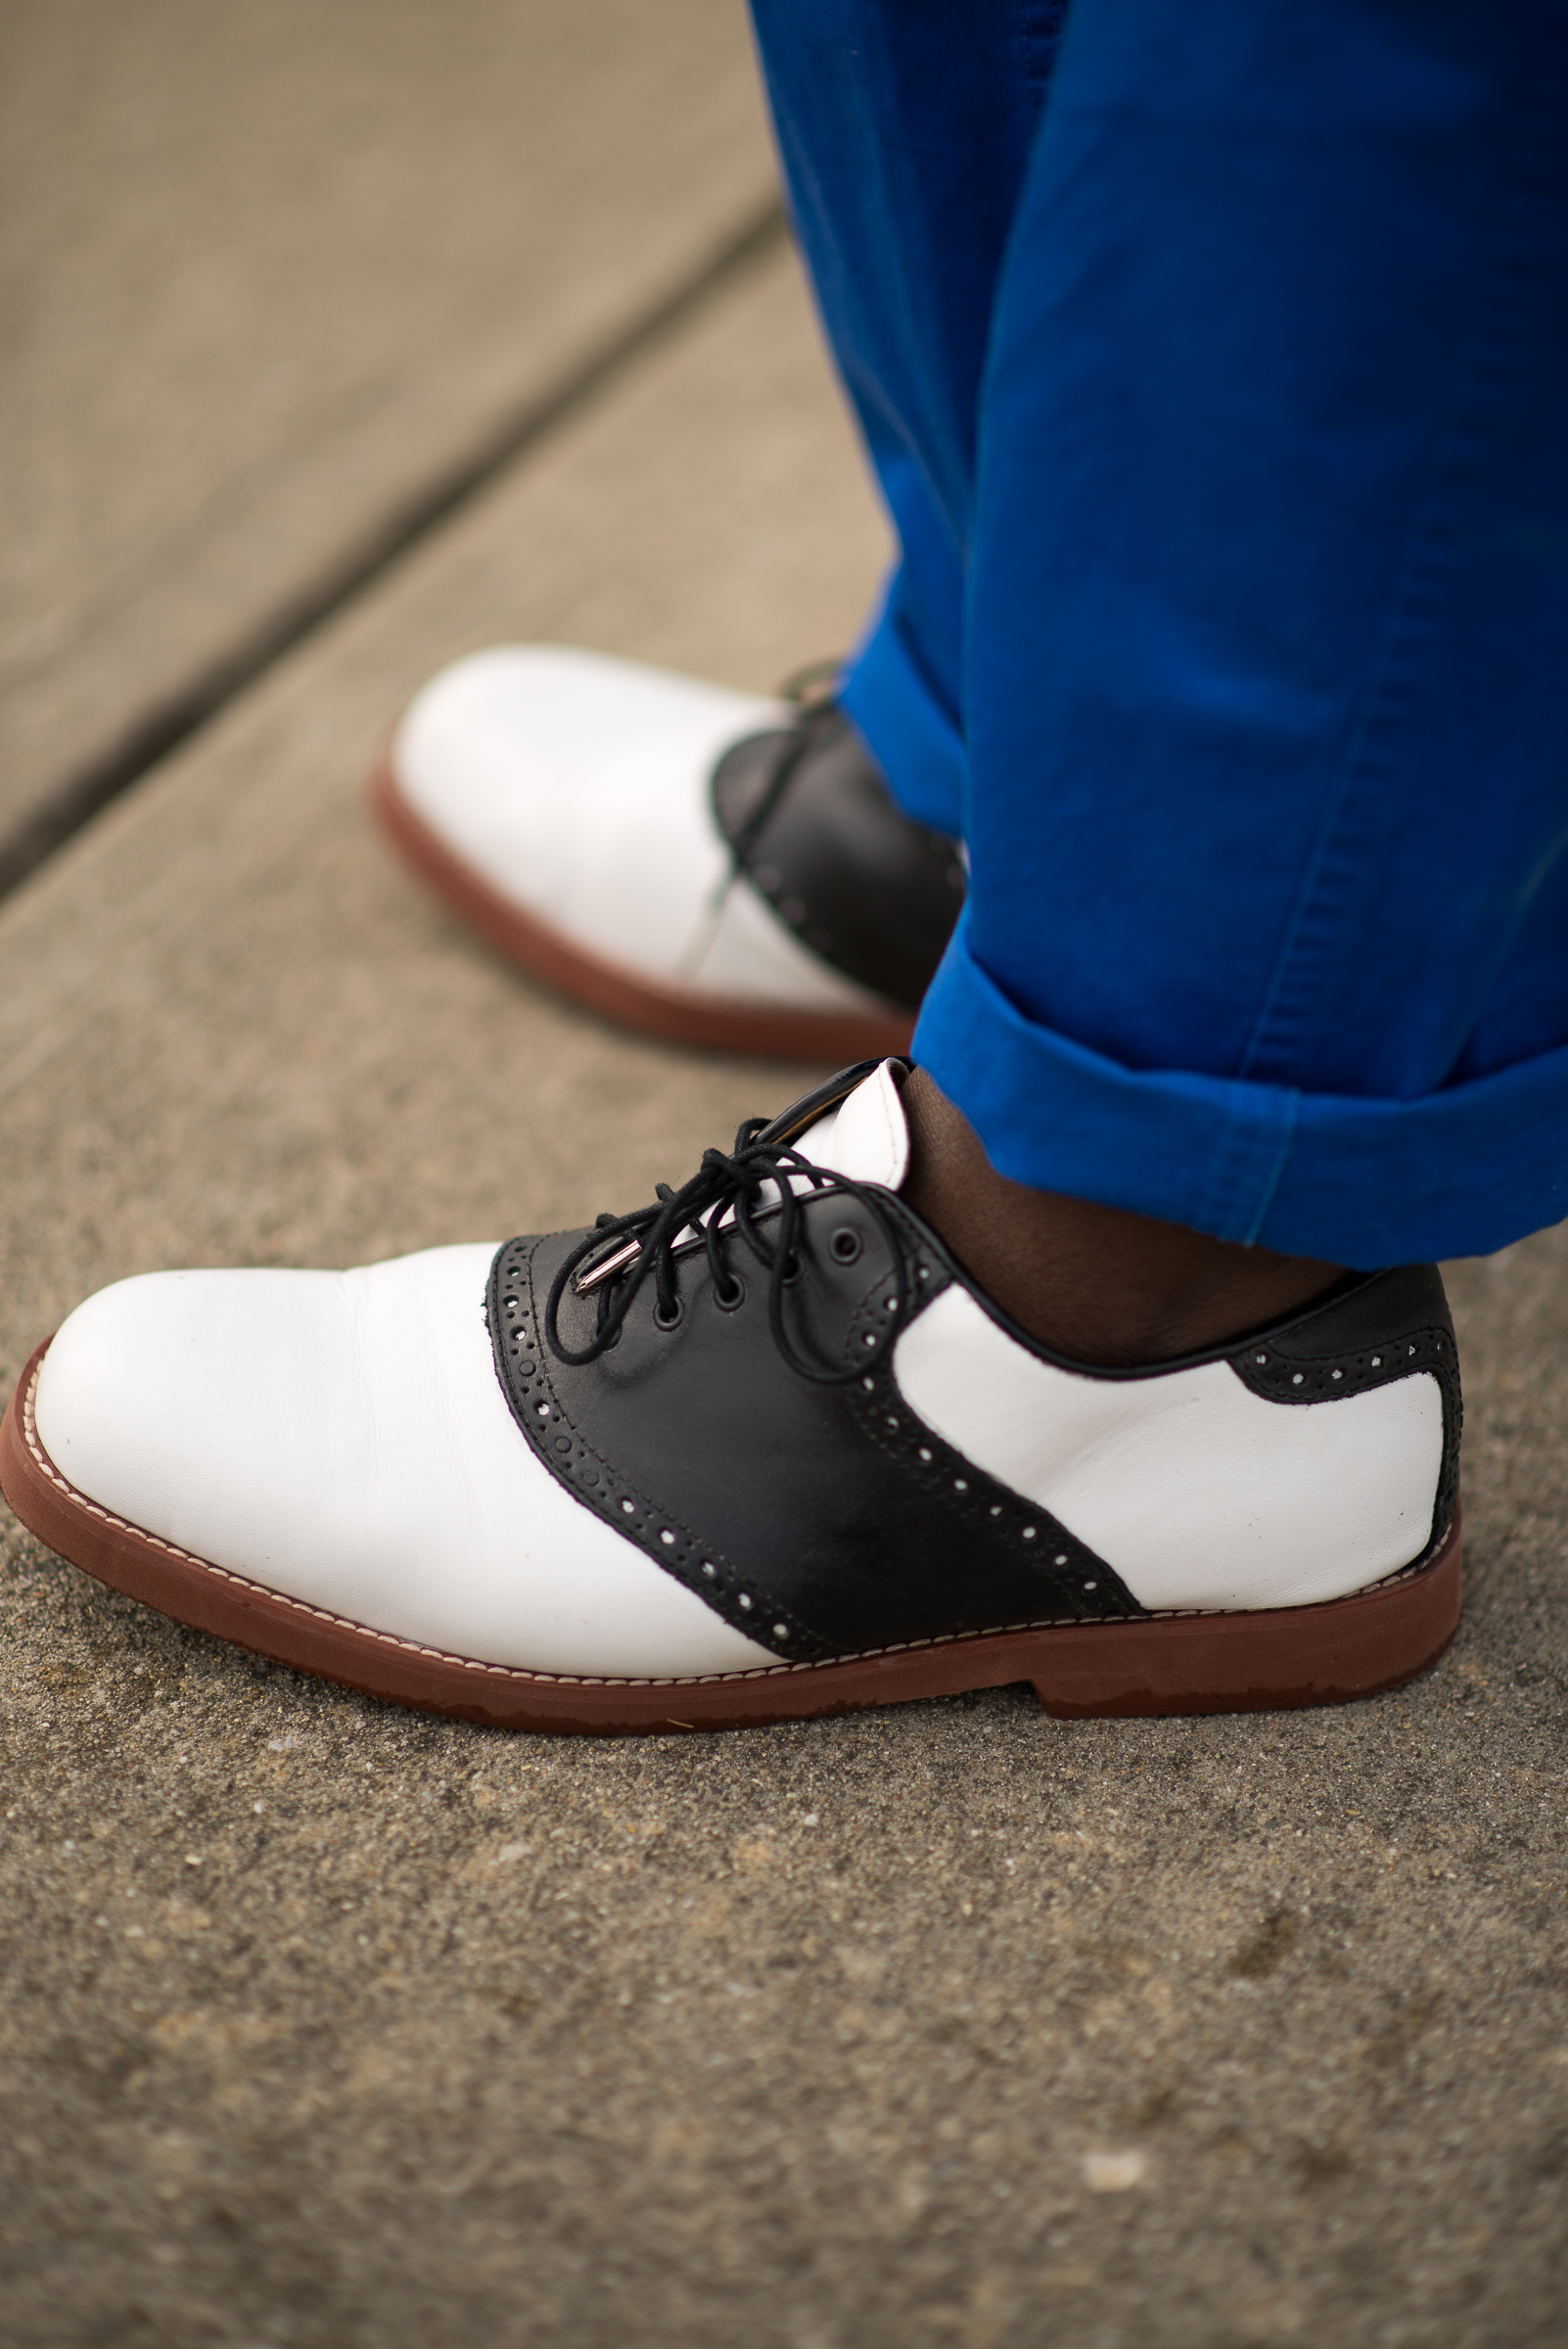 Isaiah Johnson | IUPUI   Electric Blue Chinos   Black and White contrast Saddle Shoes